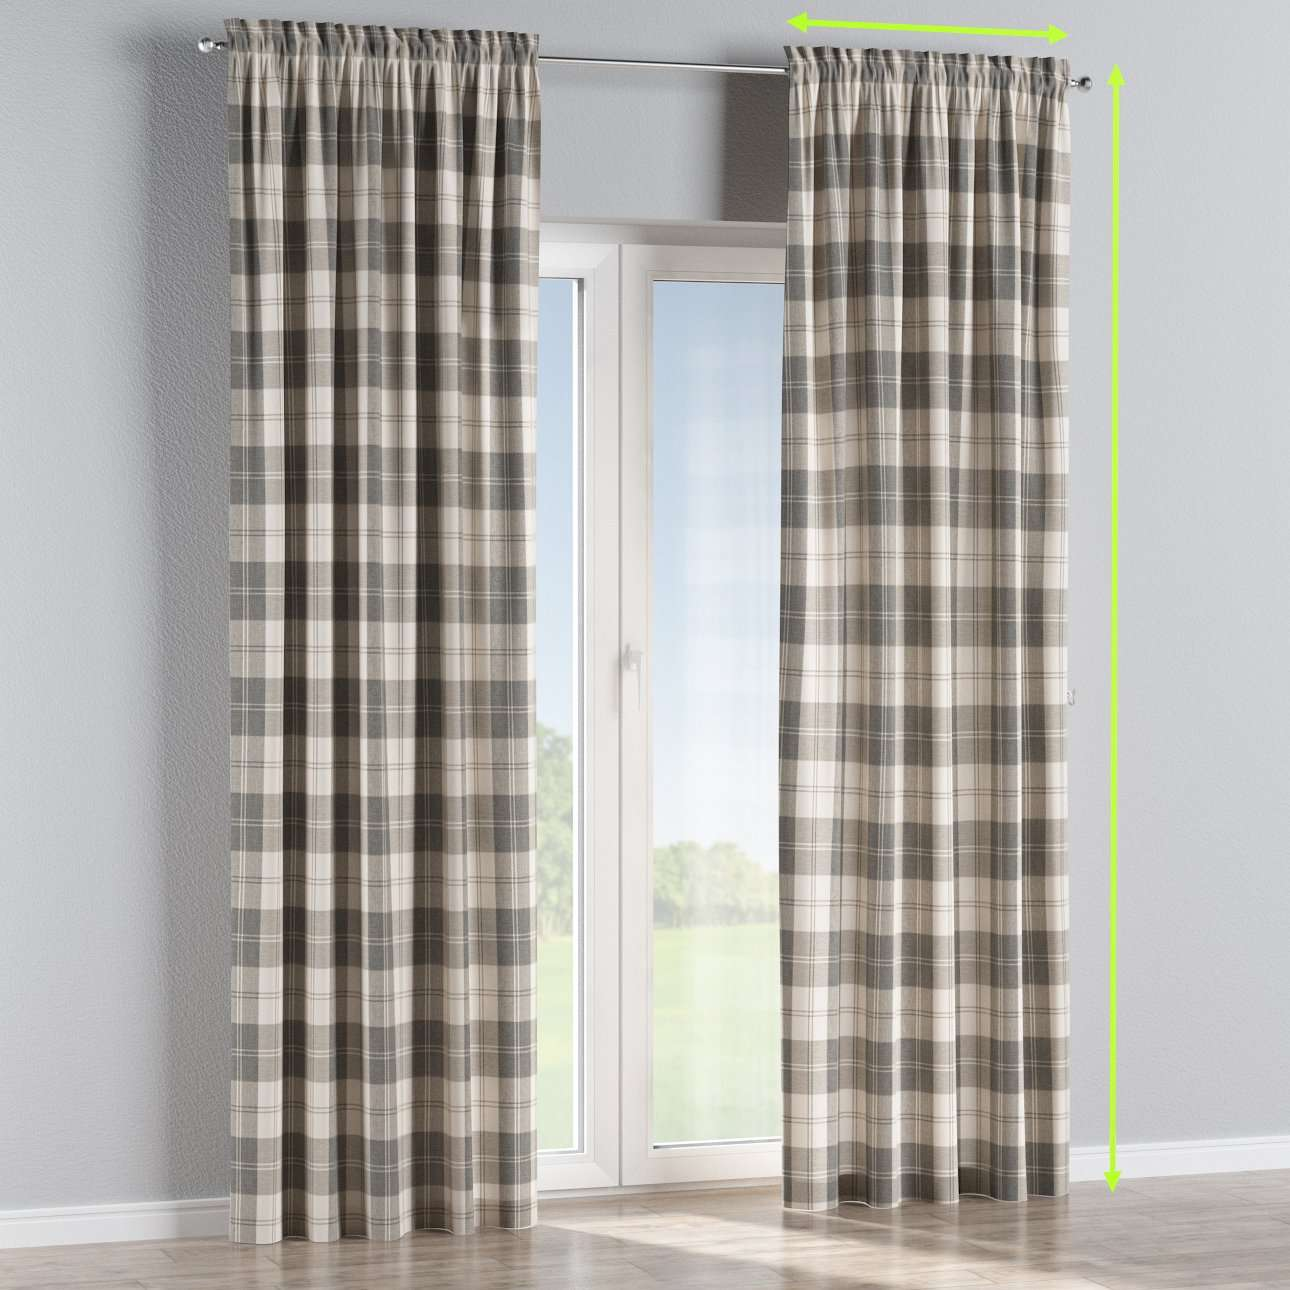 Slot and frill curtains in collection Edinburgh, fabric: 115-79